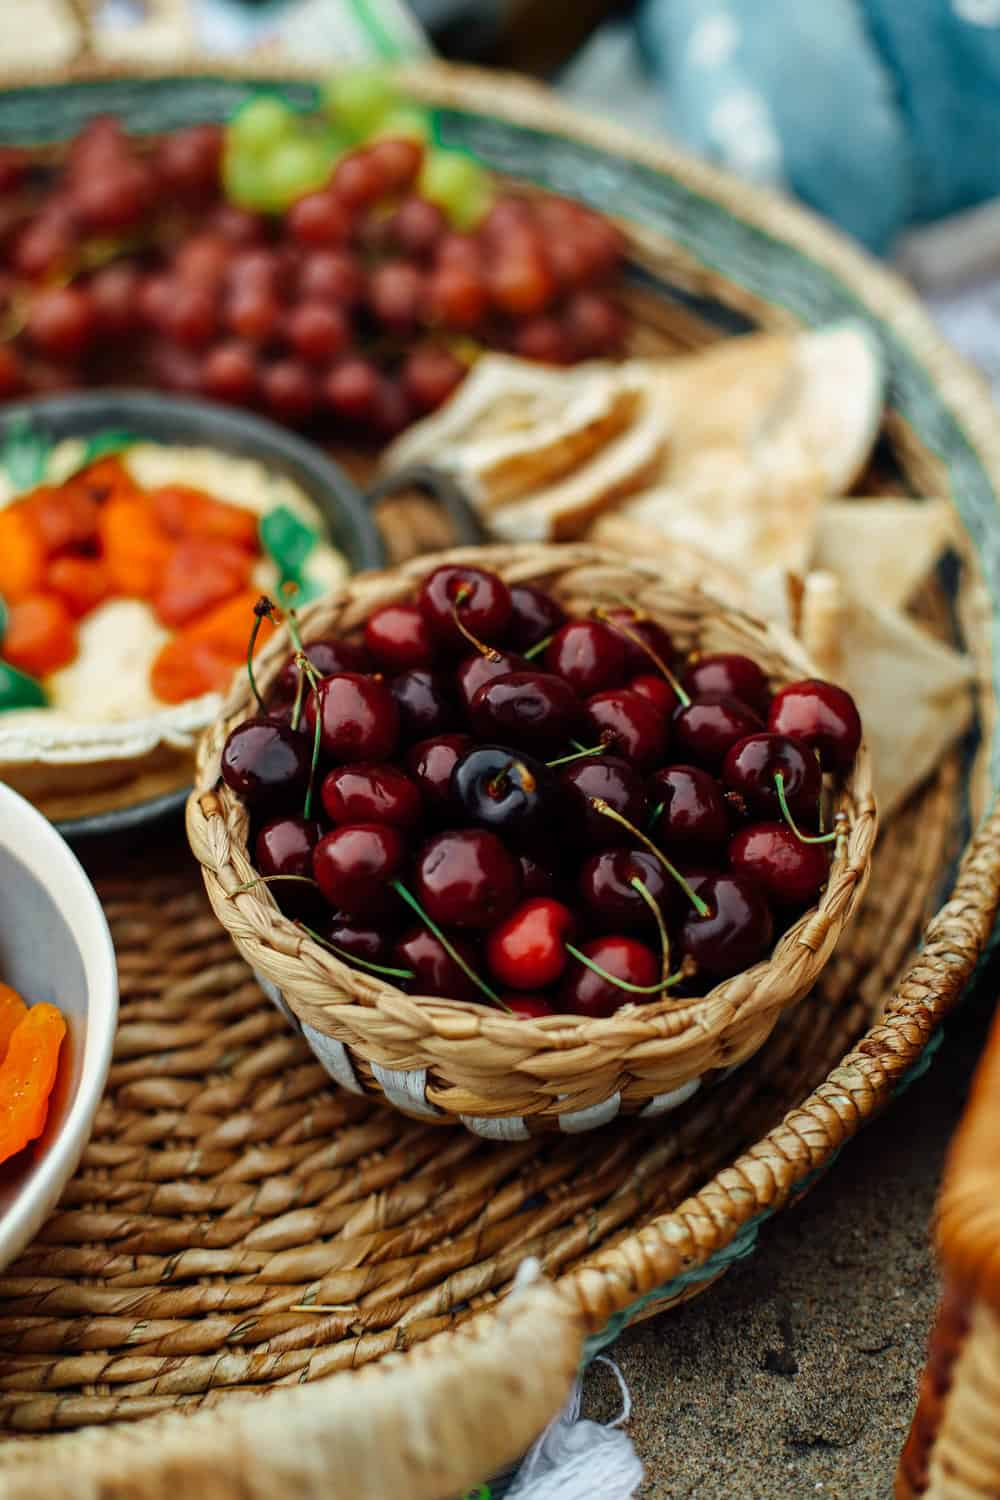 Cherries in a picnic bowl with pita hummus and grapes in a wicker basket